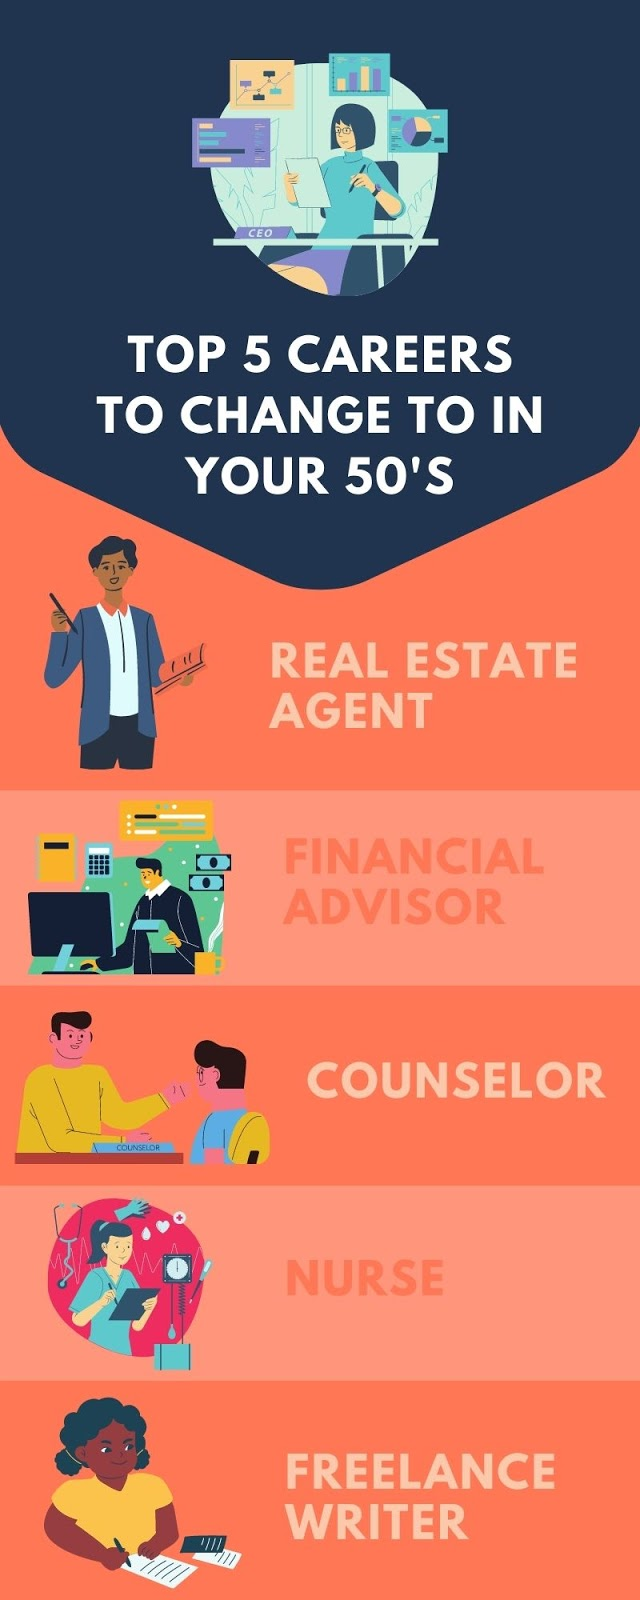 Career Changes in your 50s infographic